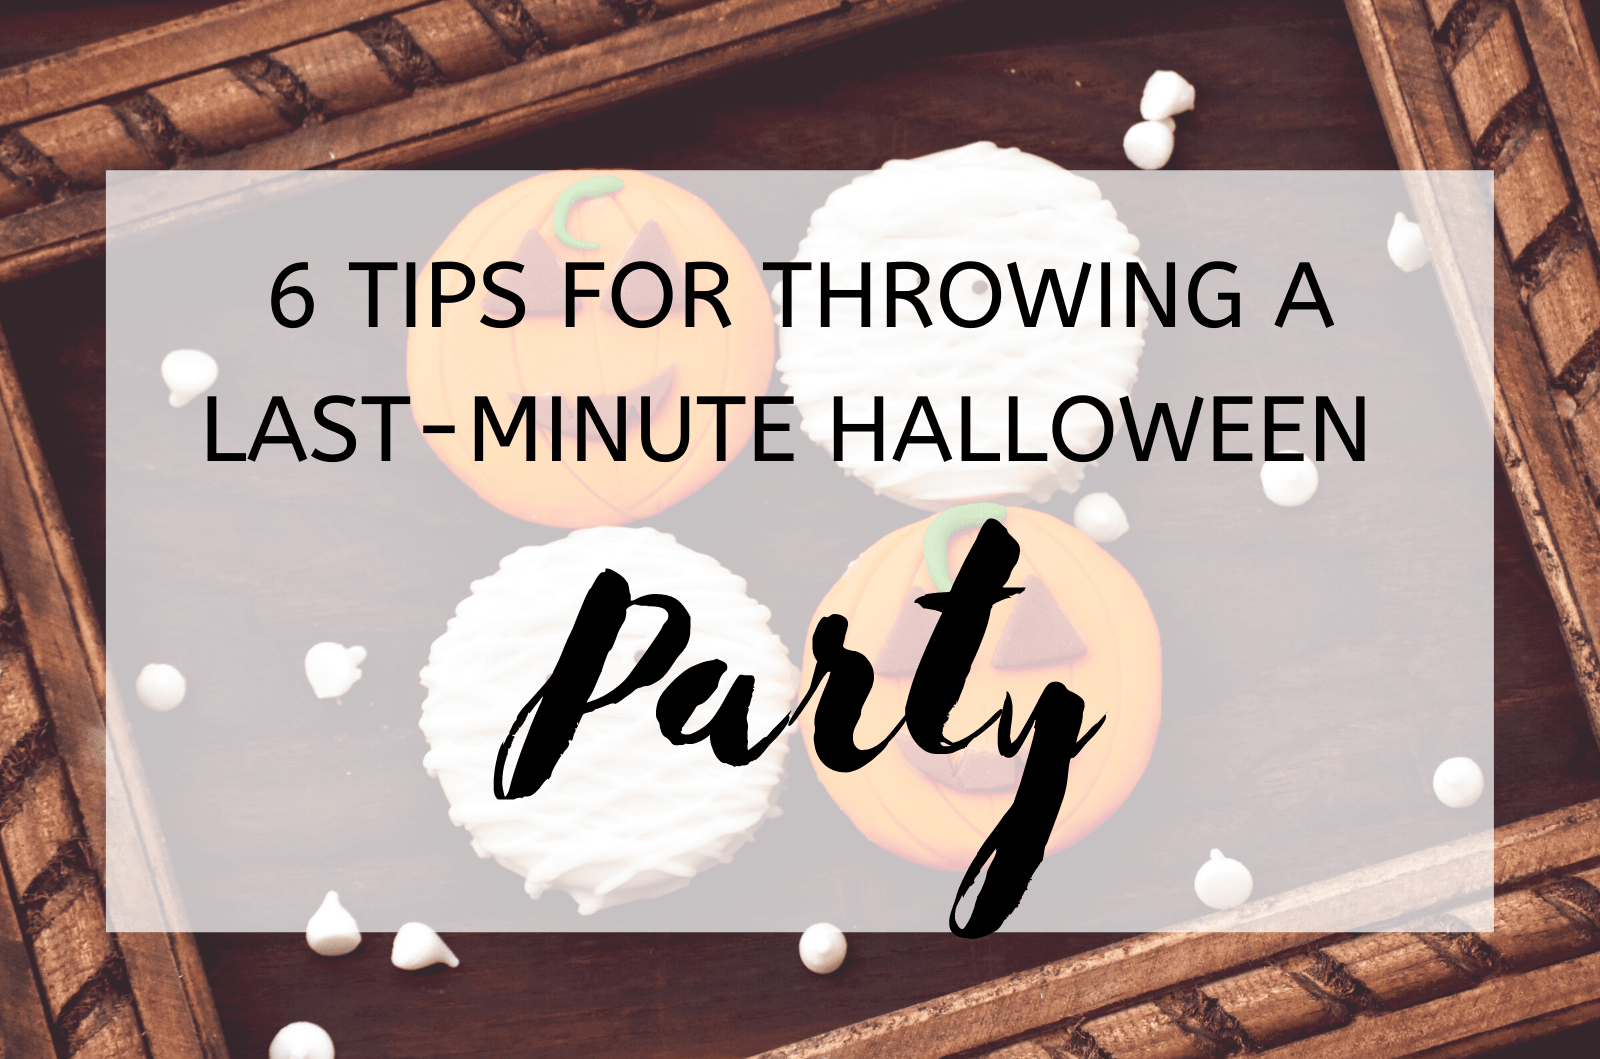 Are you considering throwing a Halloween party, but trying to evoke some creative ideas? If you're running out of time and don't have a lot prepared, here are five tips to create a last-minute Halloween party to guarantee success. Draw eyeballs on white balloons If you're rushing to create a whimsical and spooky décor but find the retails stores are running on empty with supplies, just pick up some markers and white balloons. You can draw anything from skulls and ghosts to eyeballs on white balloons and place them around your party space to create and affordable and instantly fun party atmosphere. If little kids will be attending, they're likely to enjoy the balloons more than scary ghouls or skeletons hanging out in the yard. Dress up in unicorn costumes